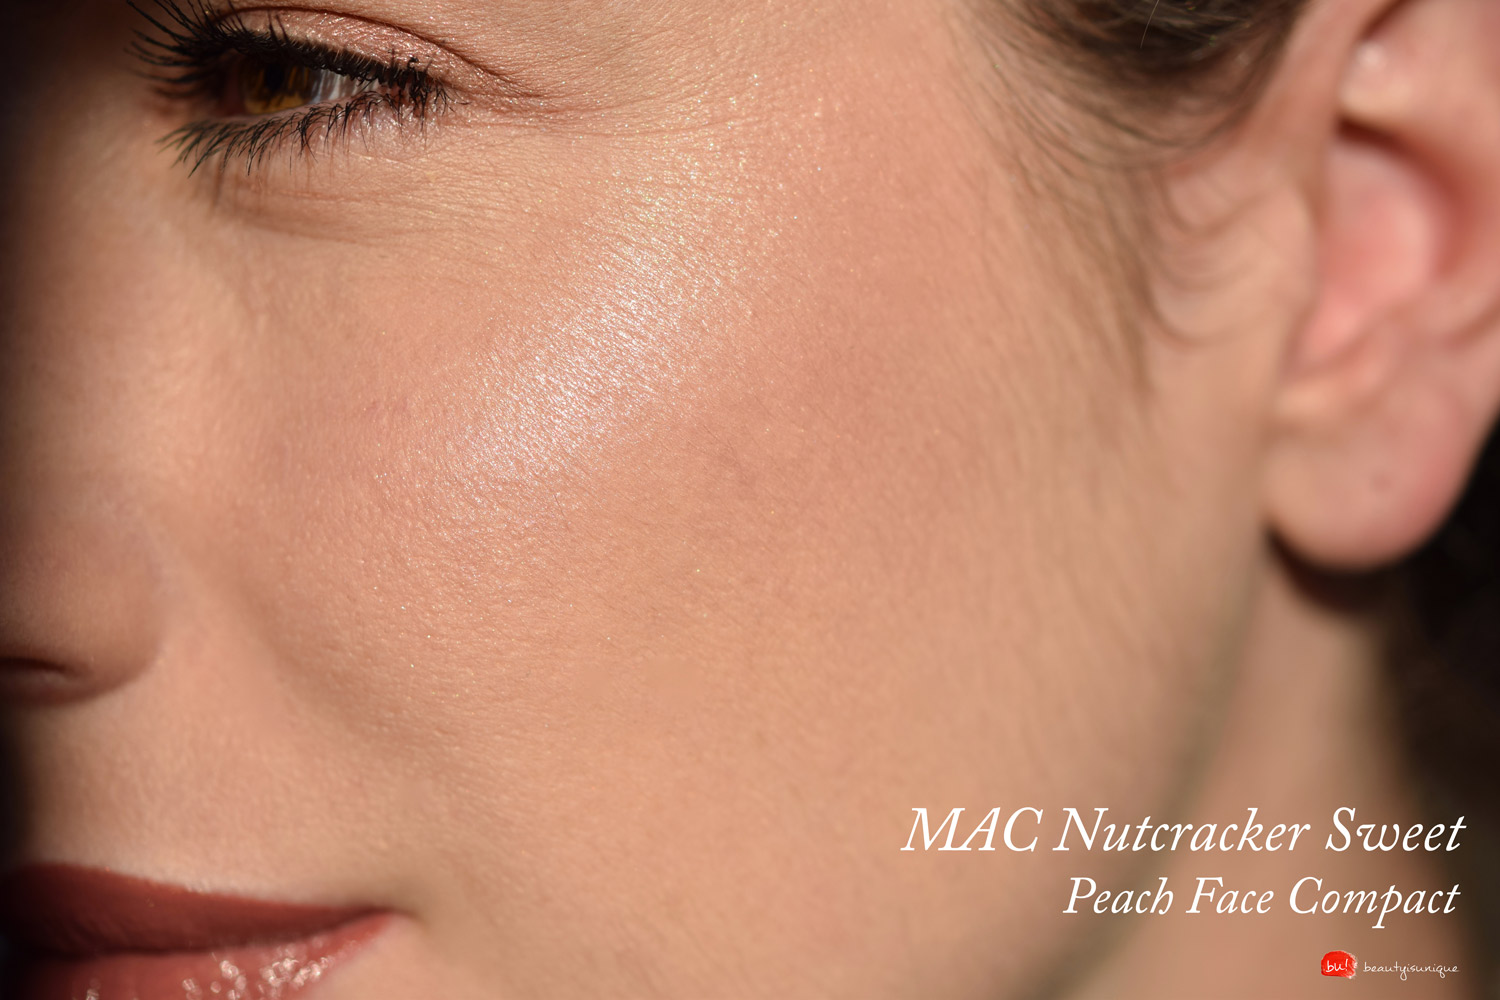 mac-nutracker-sweet-peach-face-compact